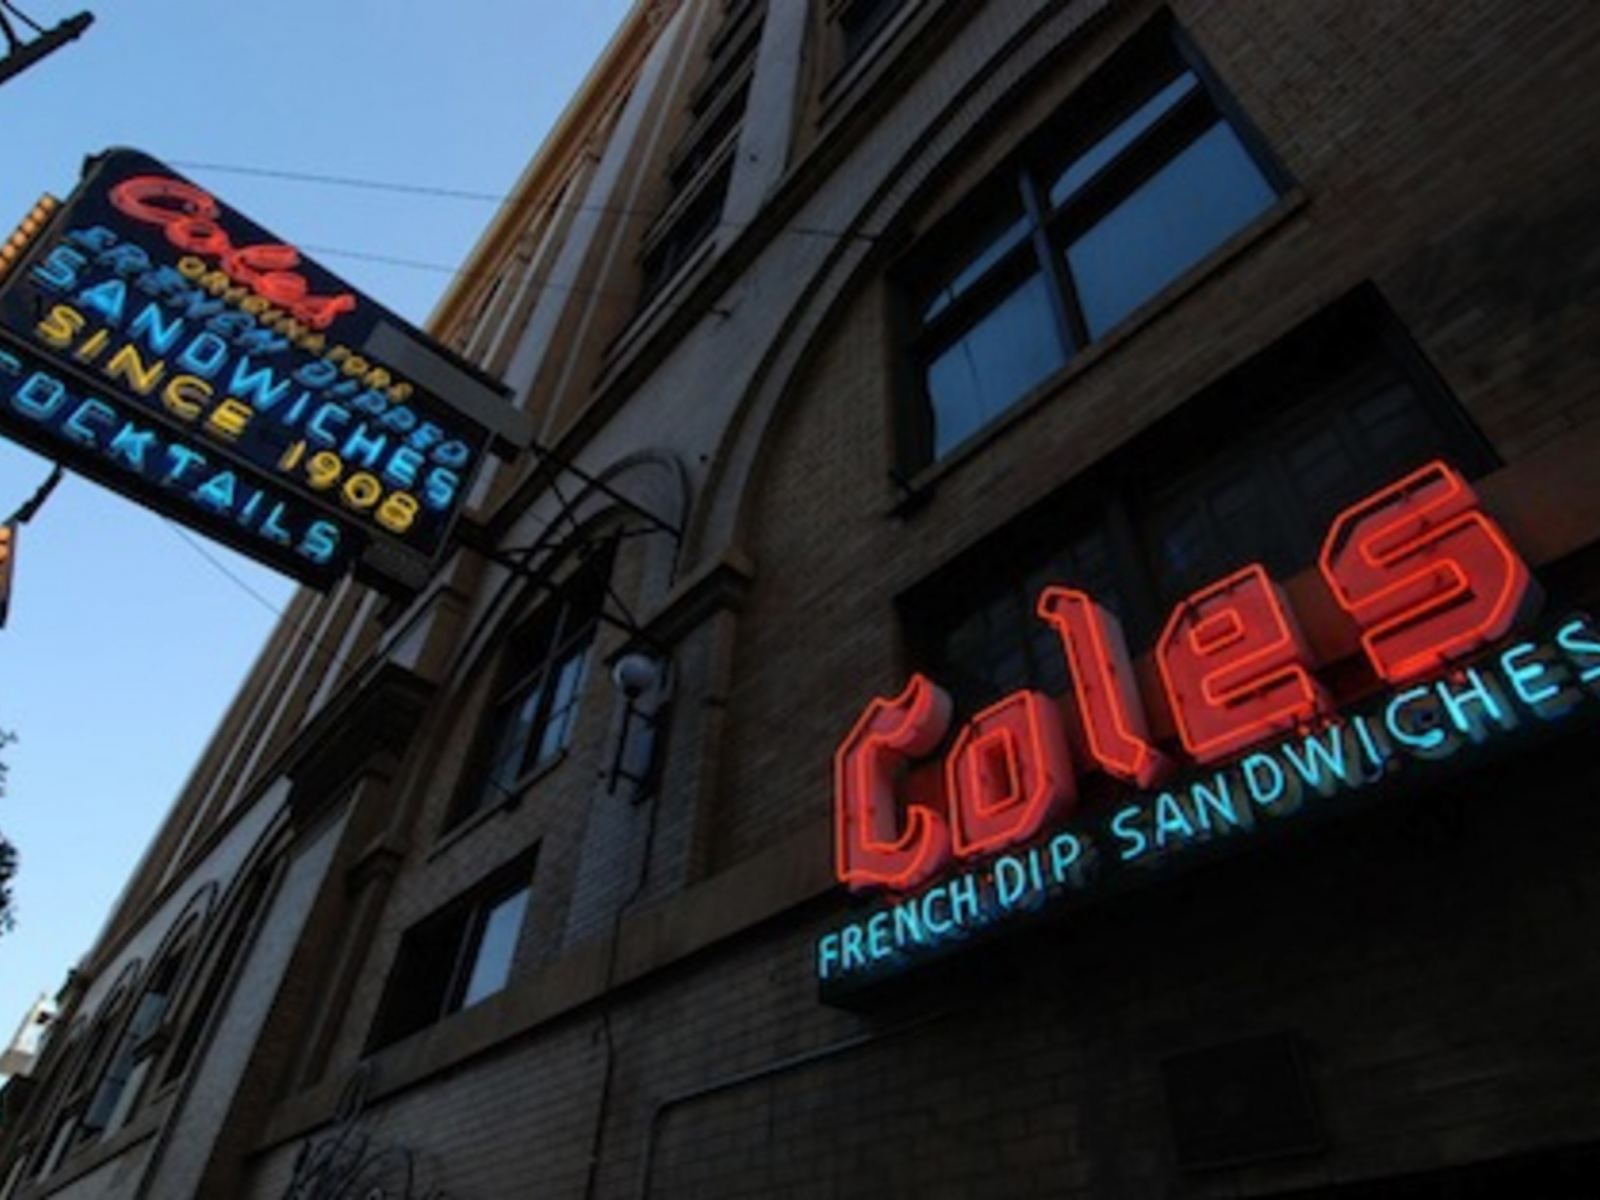 Cole's sign